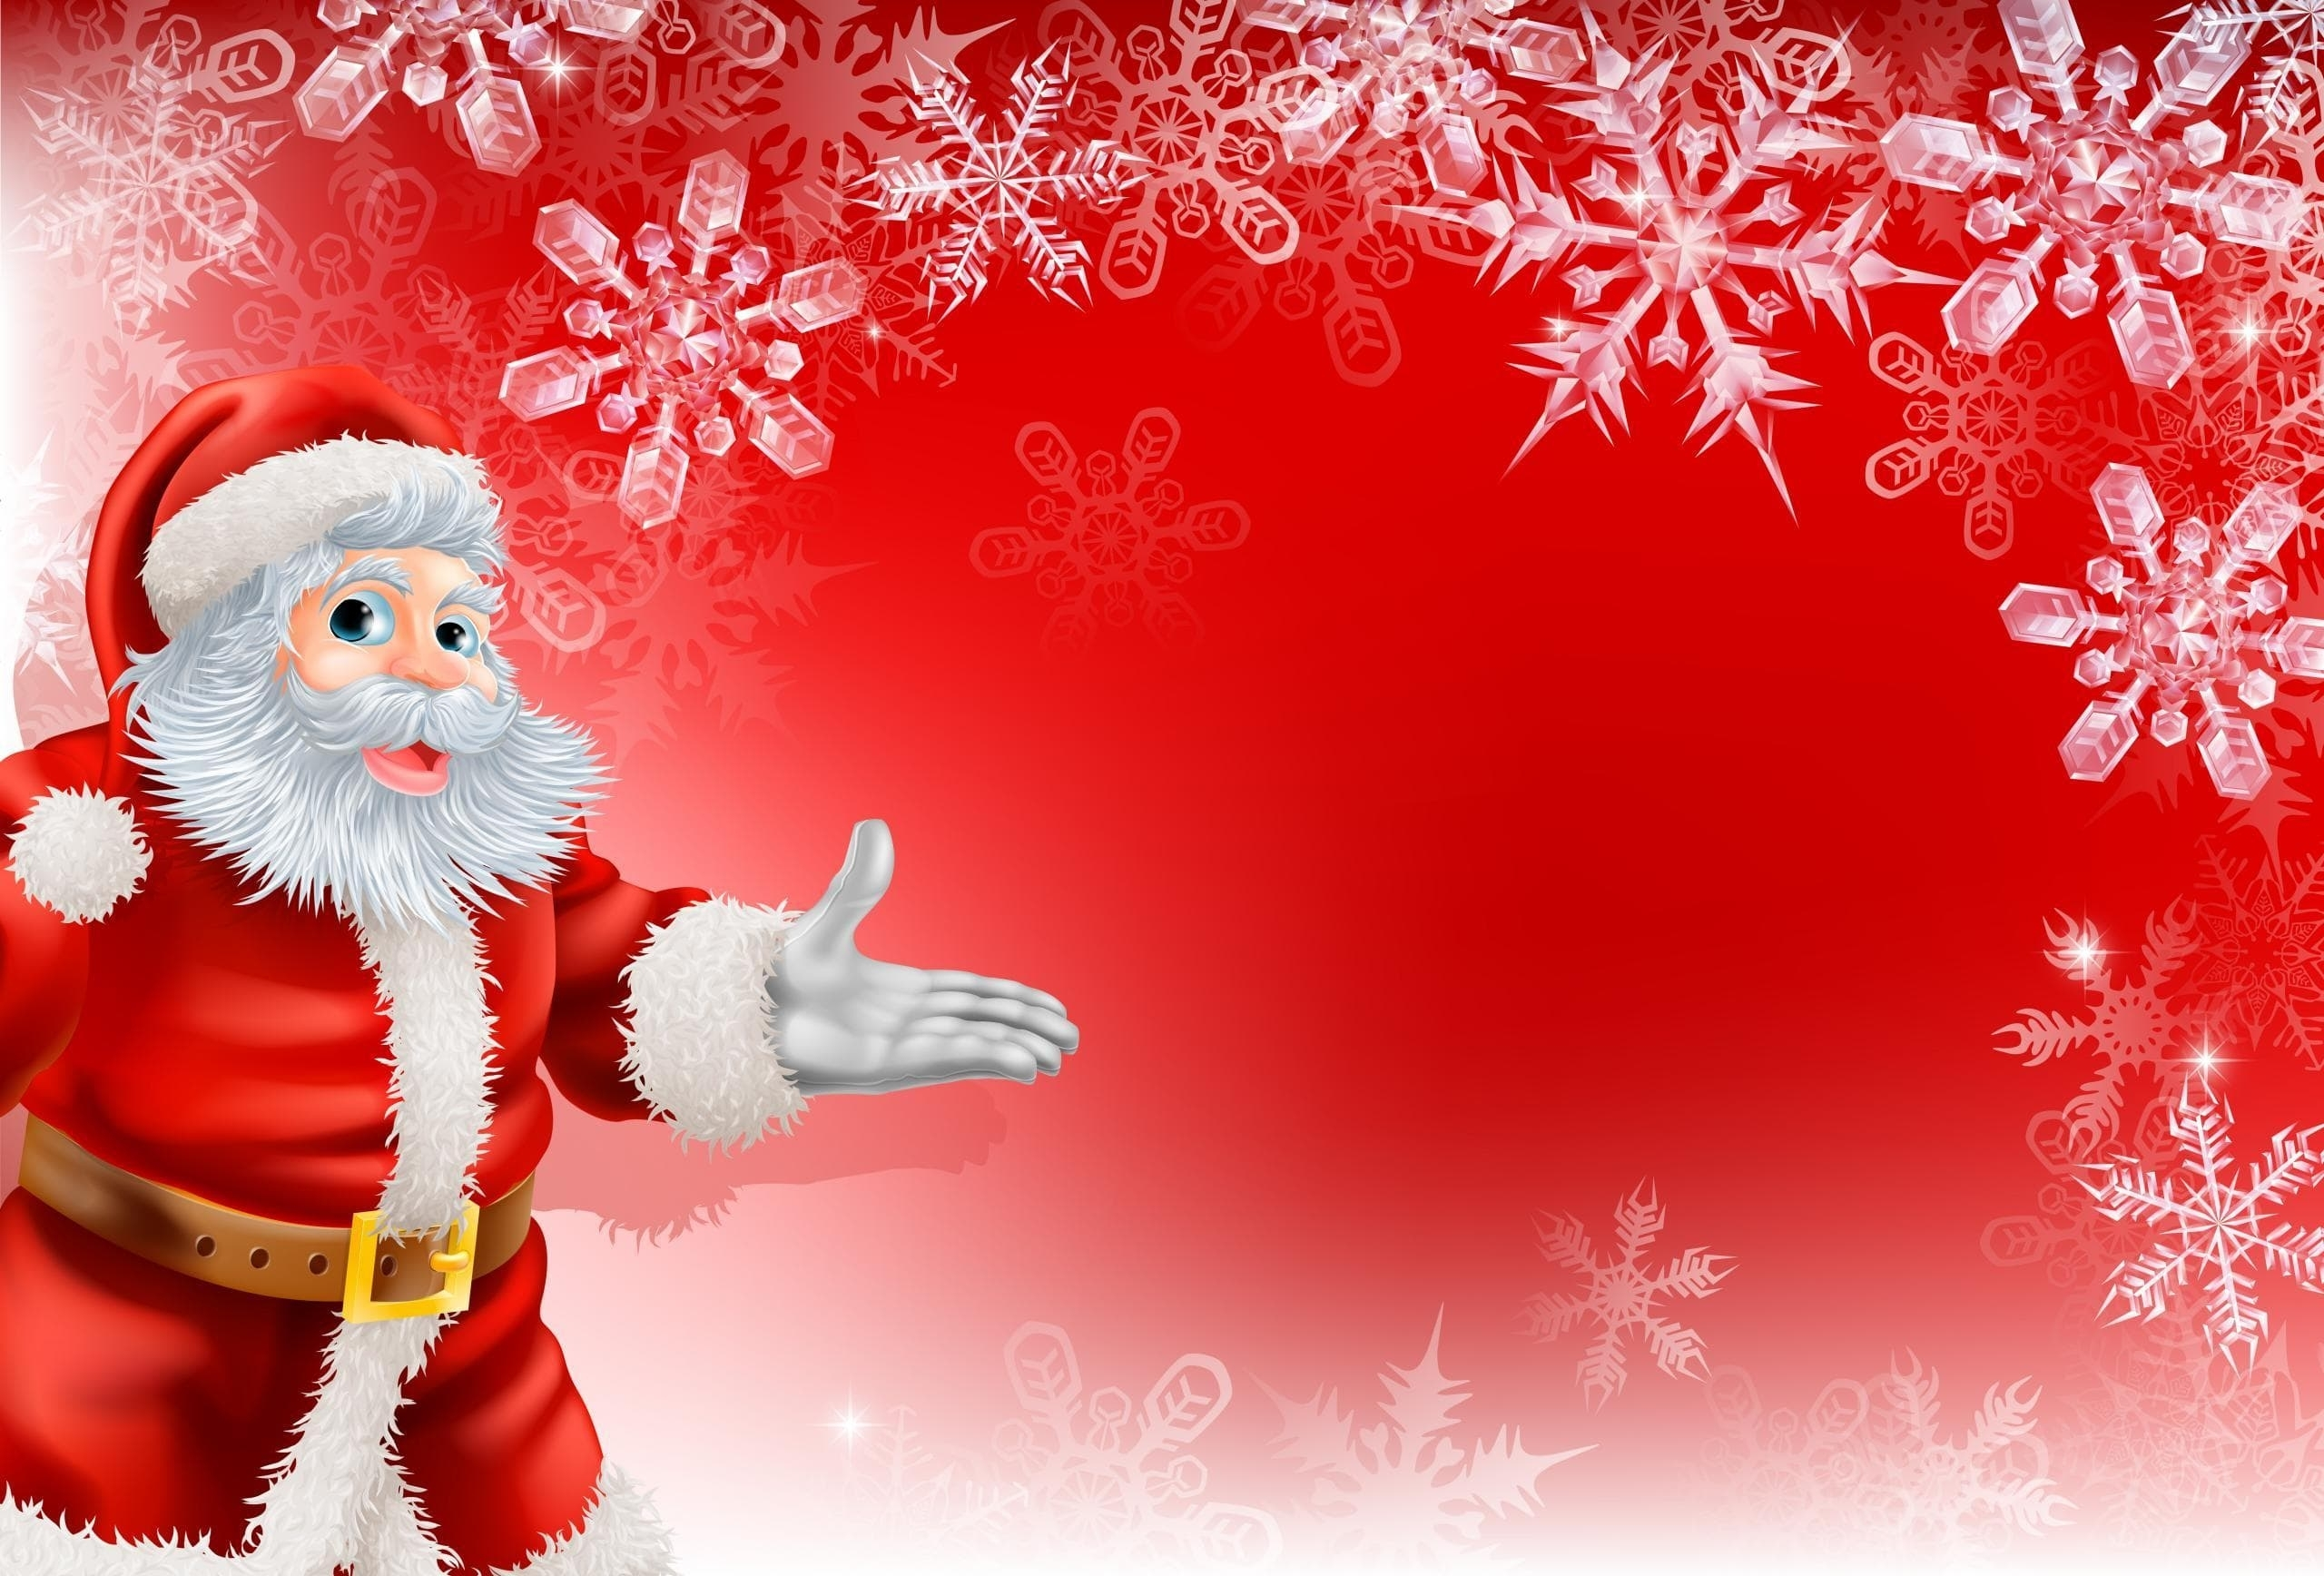 santa claus hd desktop wallpapers | 7wallpapers